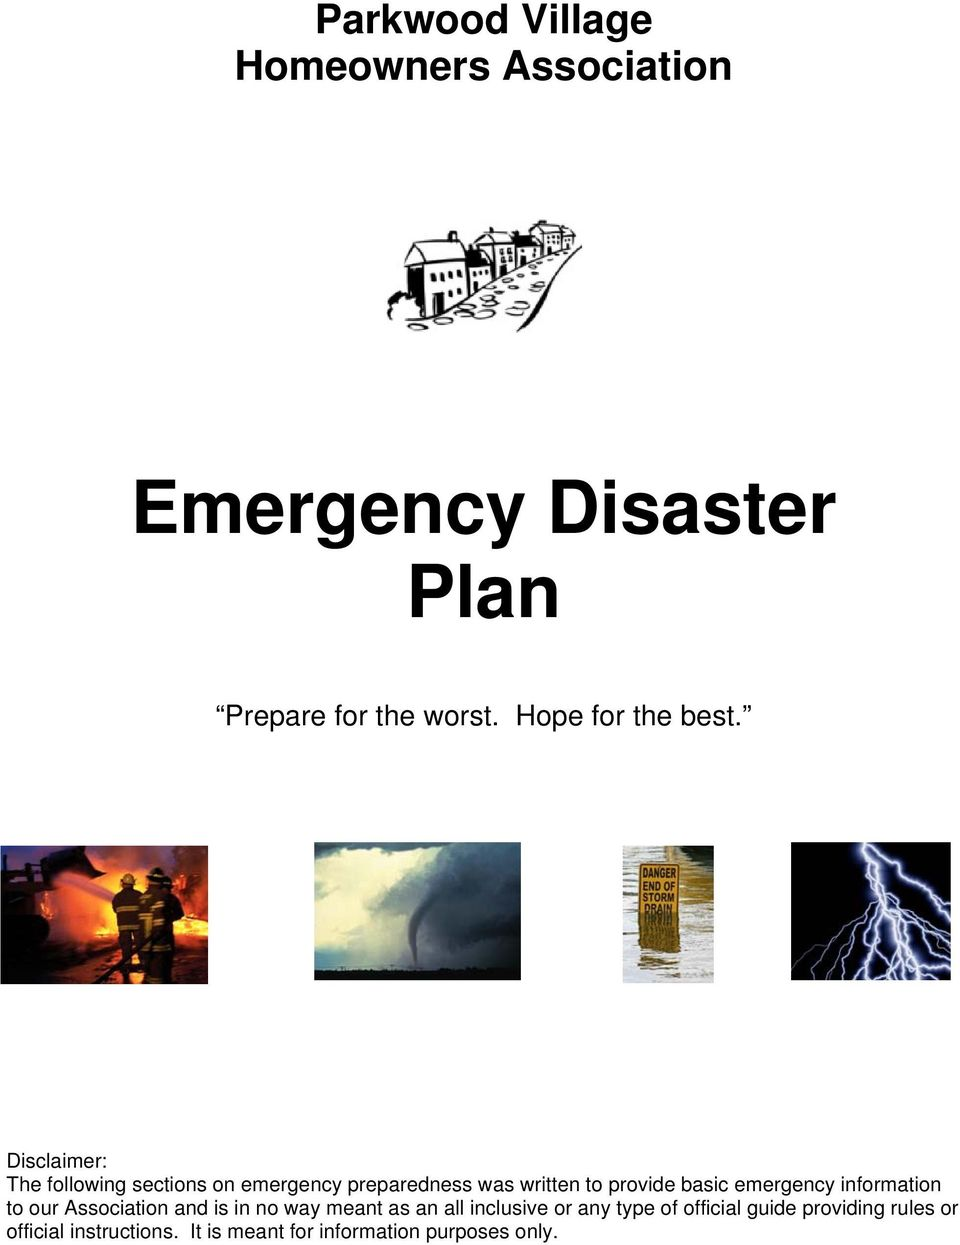 Disclaimer: The fllwing sectins n emergency preparedness was written t prvide basic